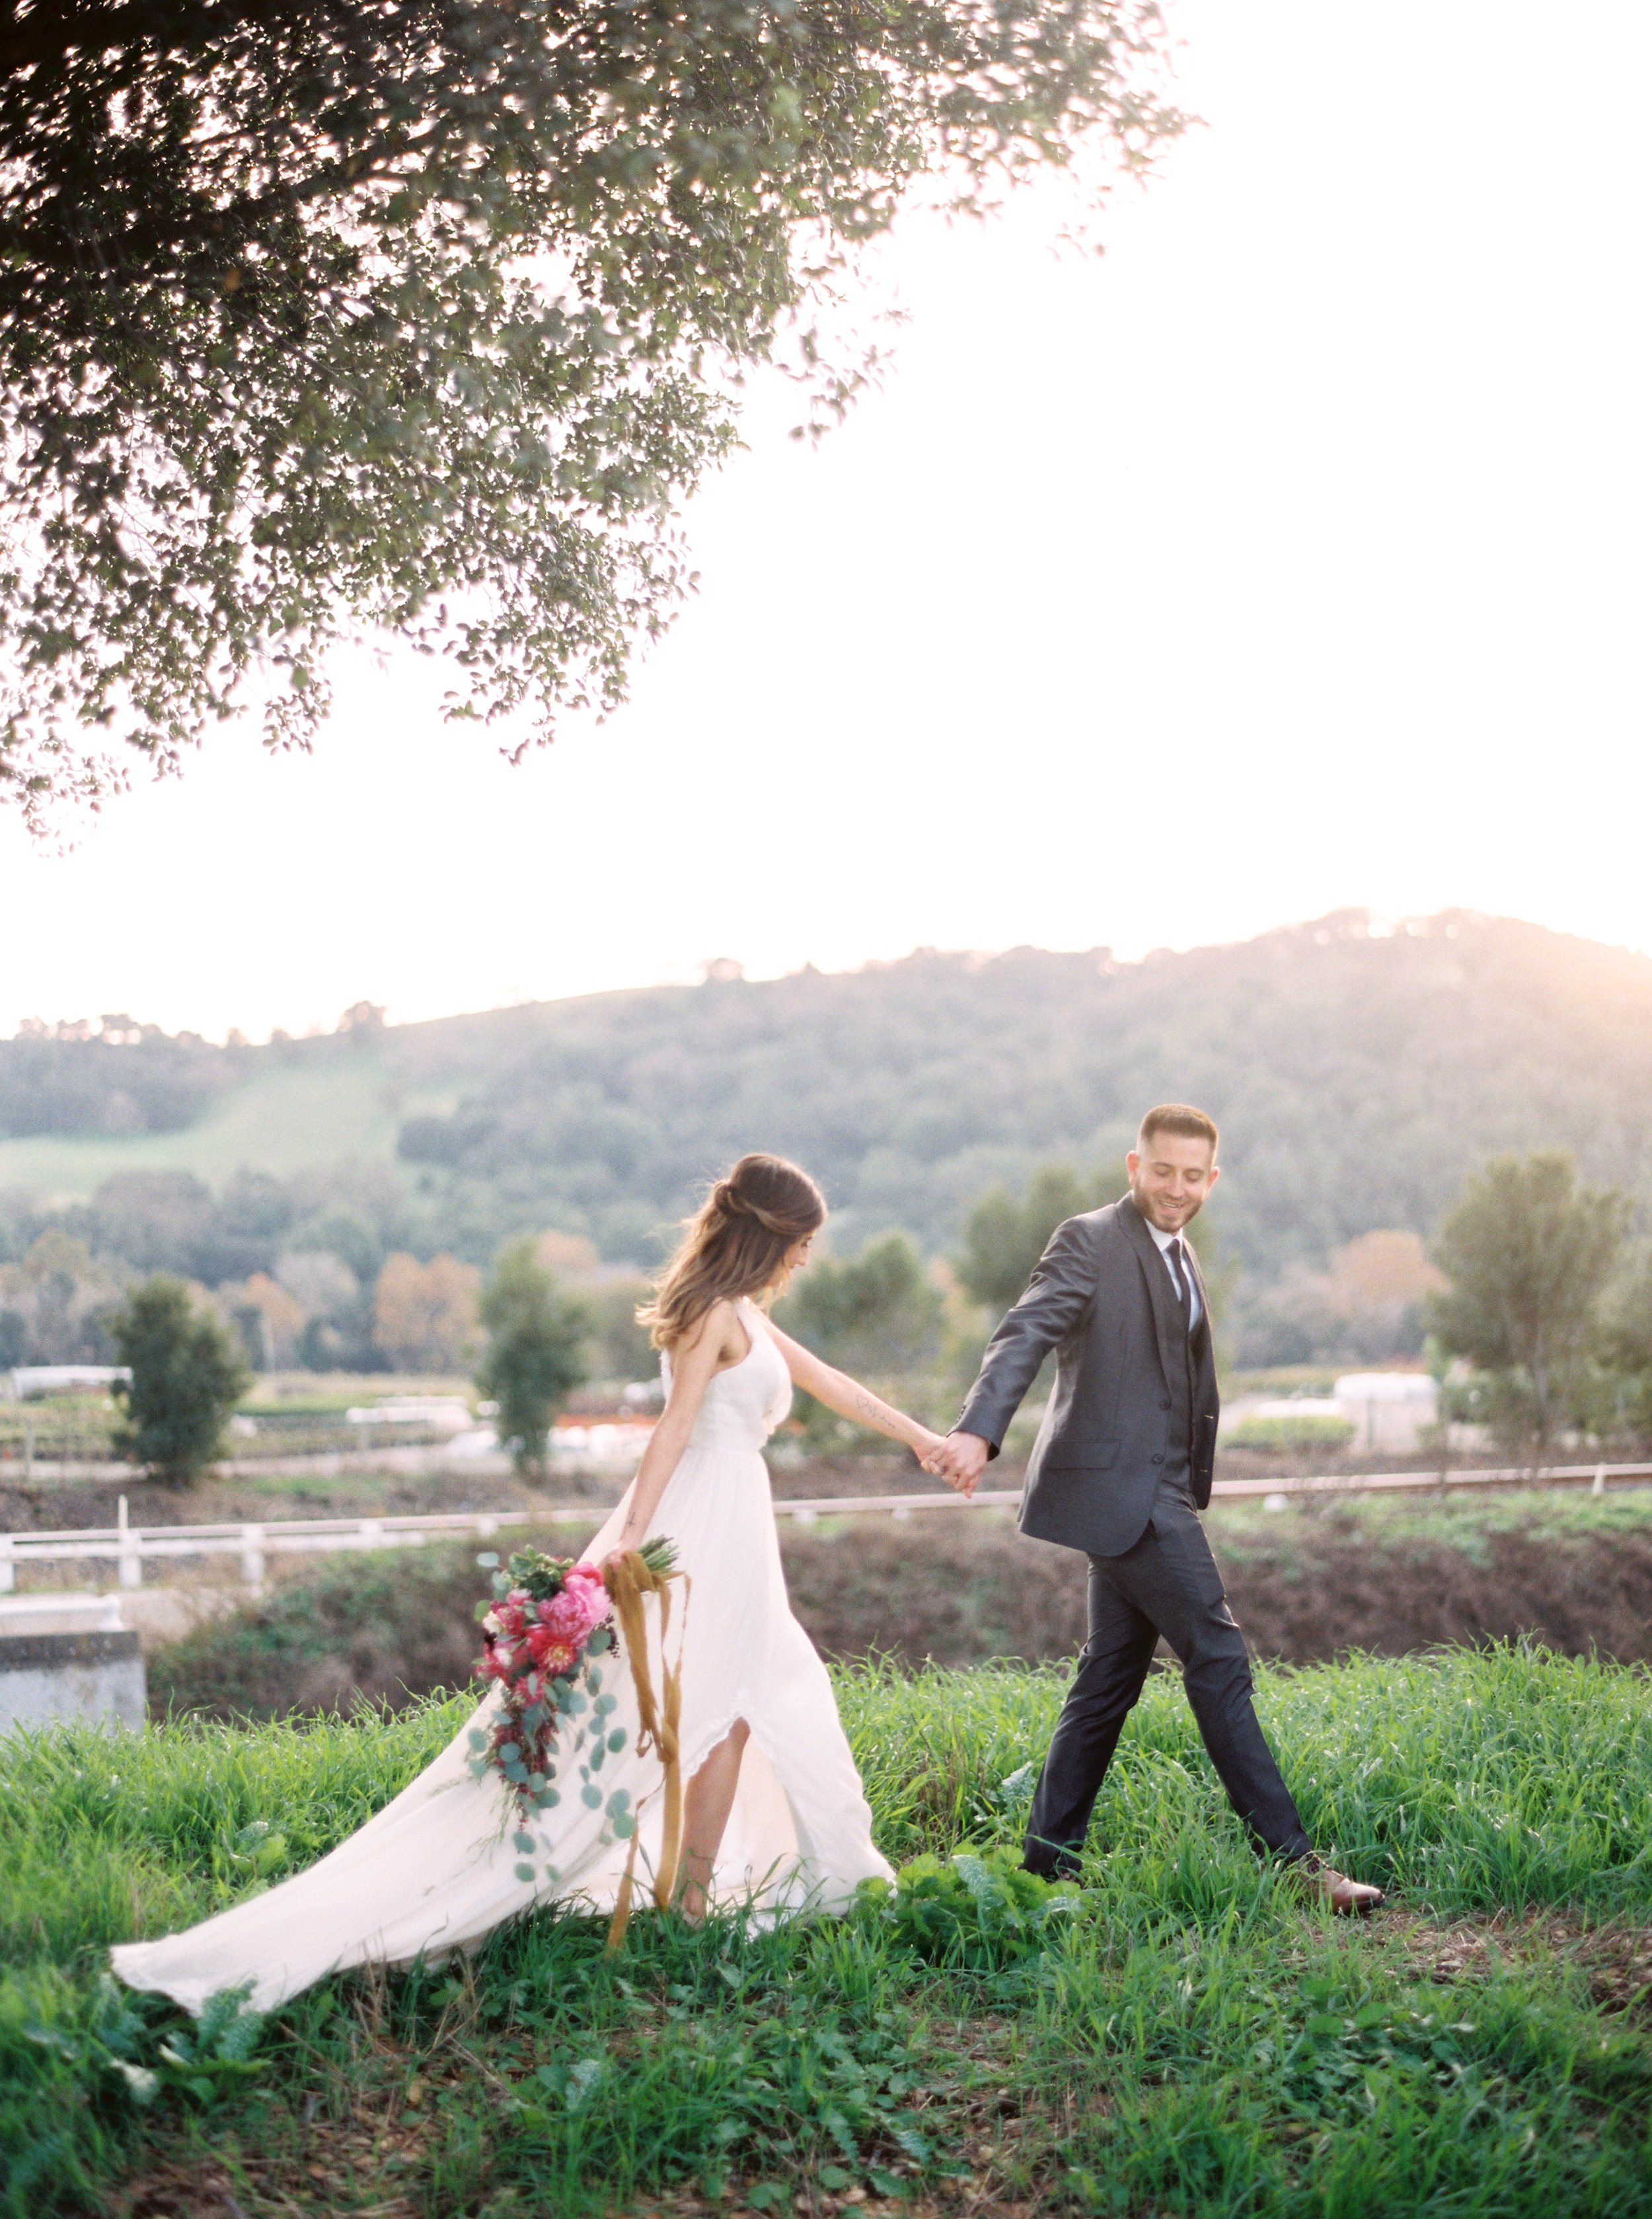 boho-inspired-wedding-at-casa-bella-in-sunol-california-67.jpg